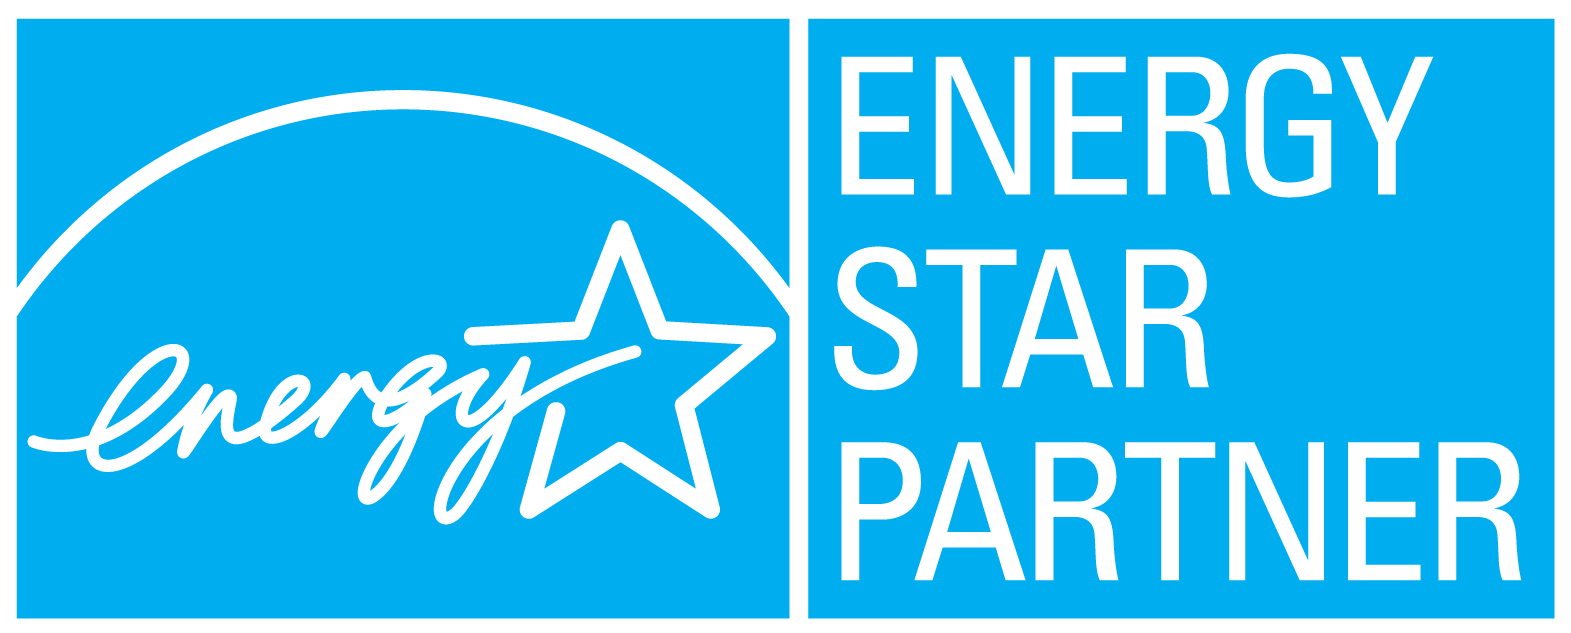 energy star partner broward boca